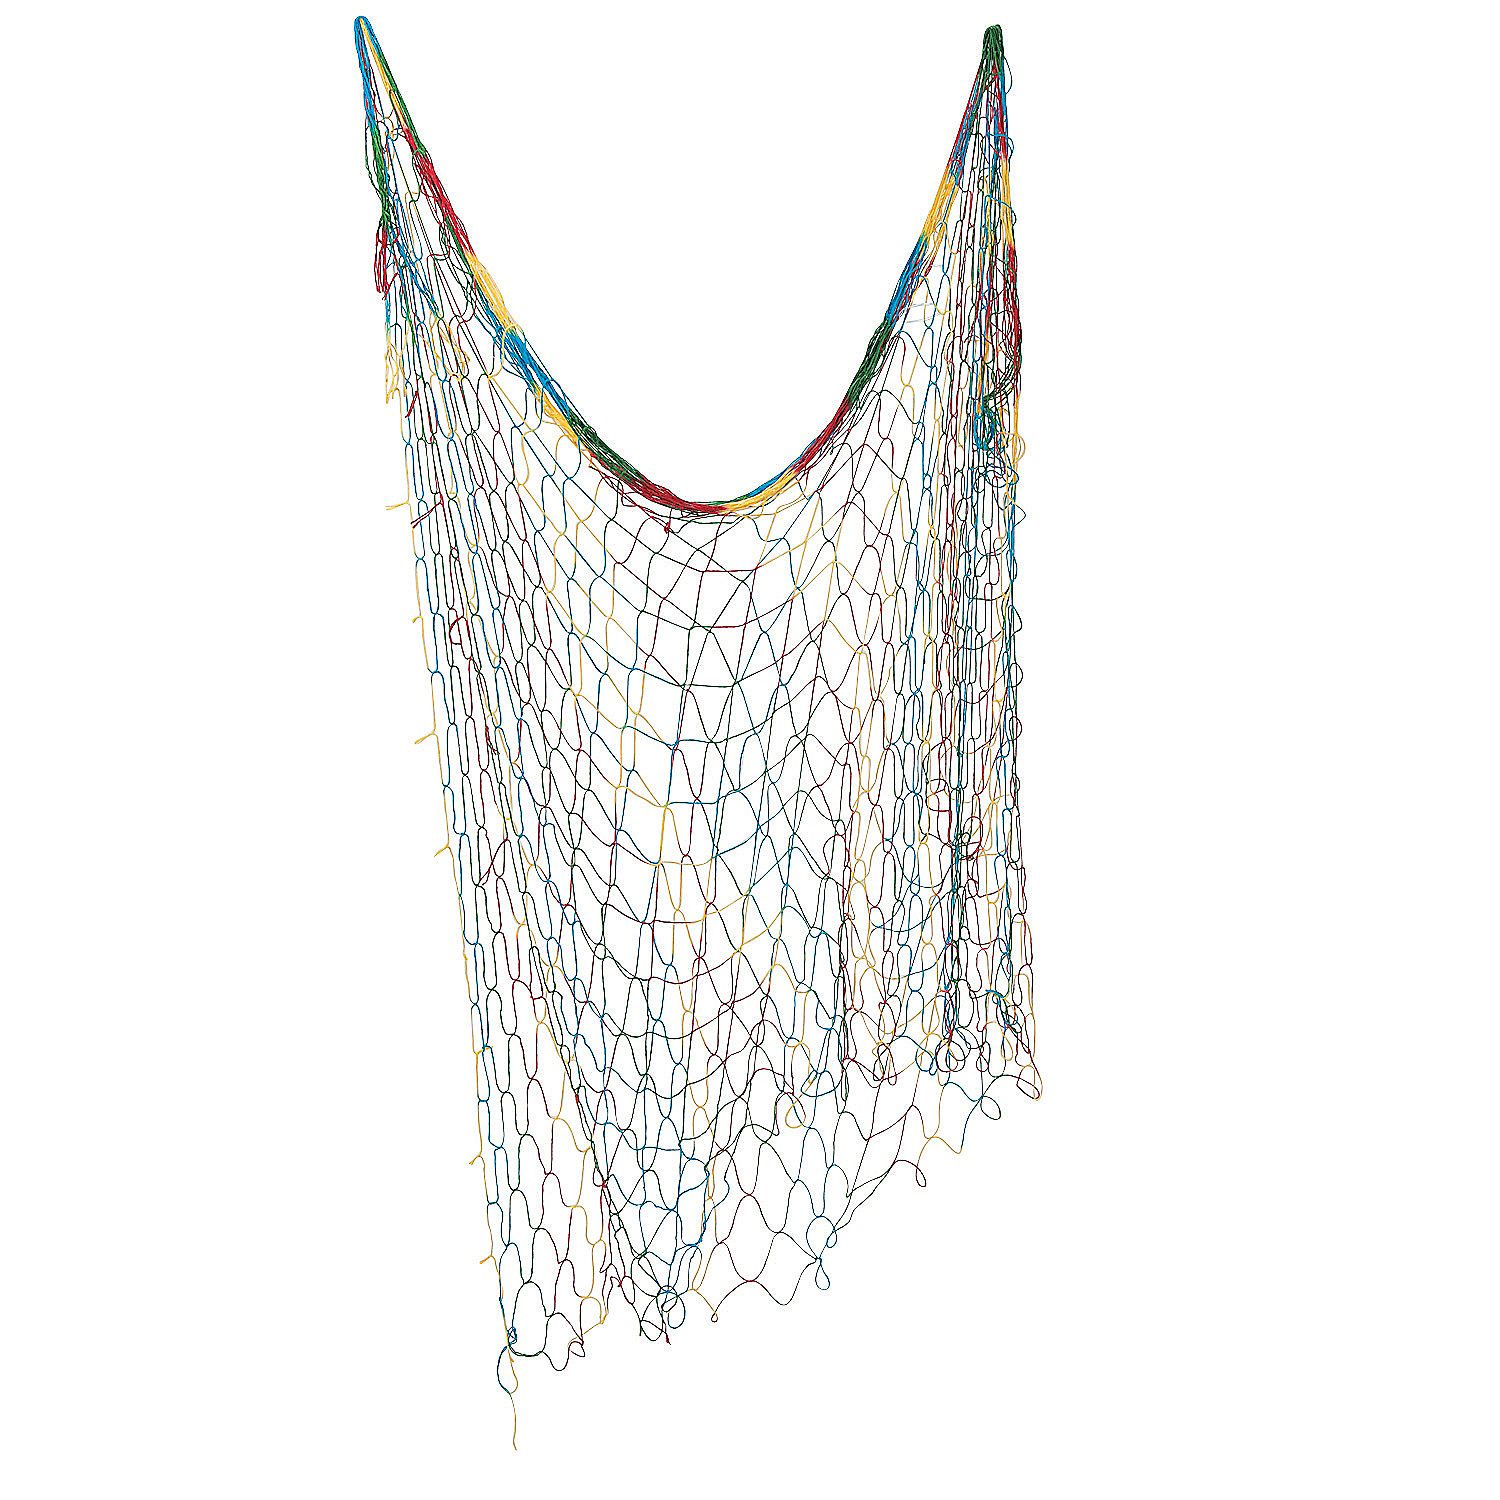 Tie-Dye Fish Net - to keep stuffed animals in picture area but out of reach! OrientalTrading.com $4.50 4' x 14' (or get 3 neutral nets for $12.99)